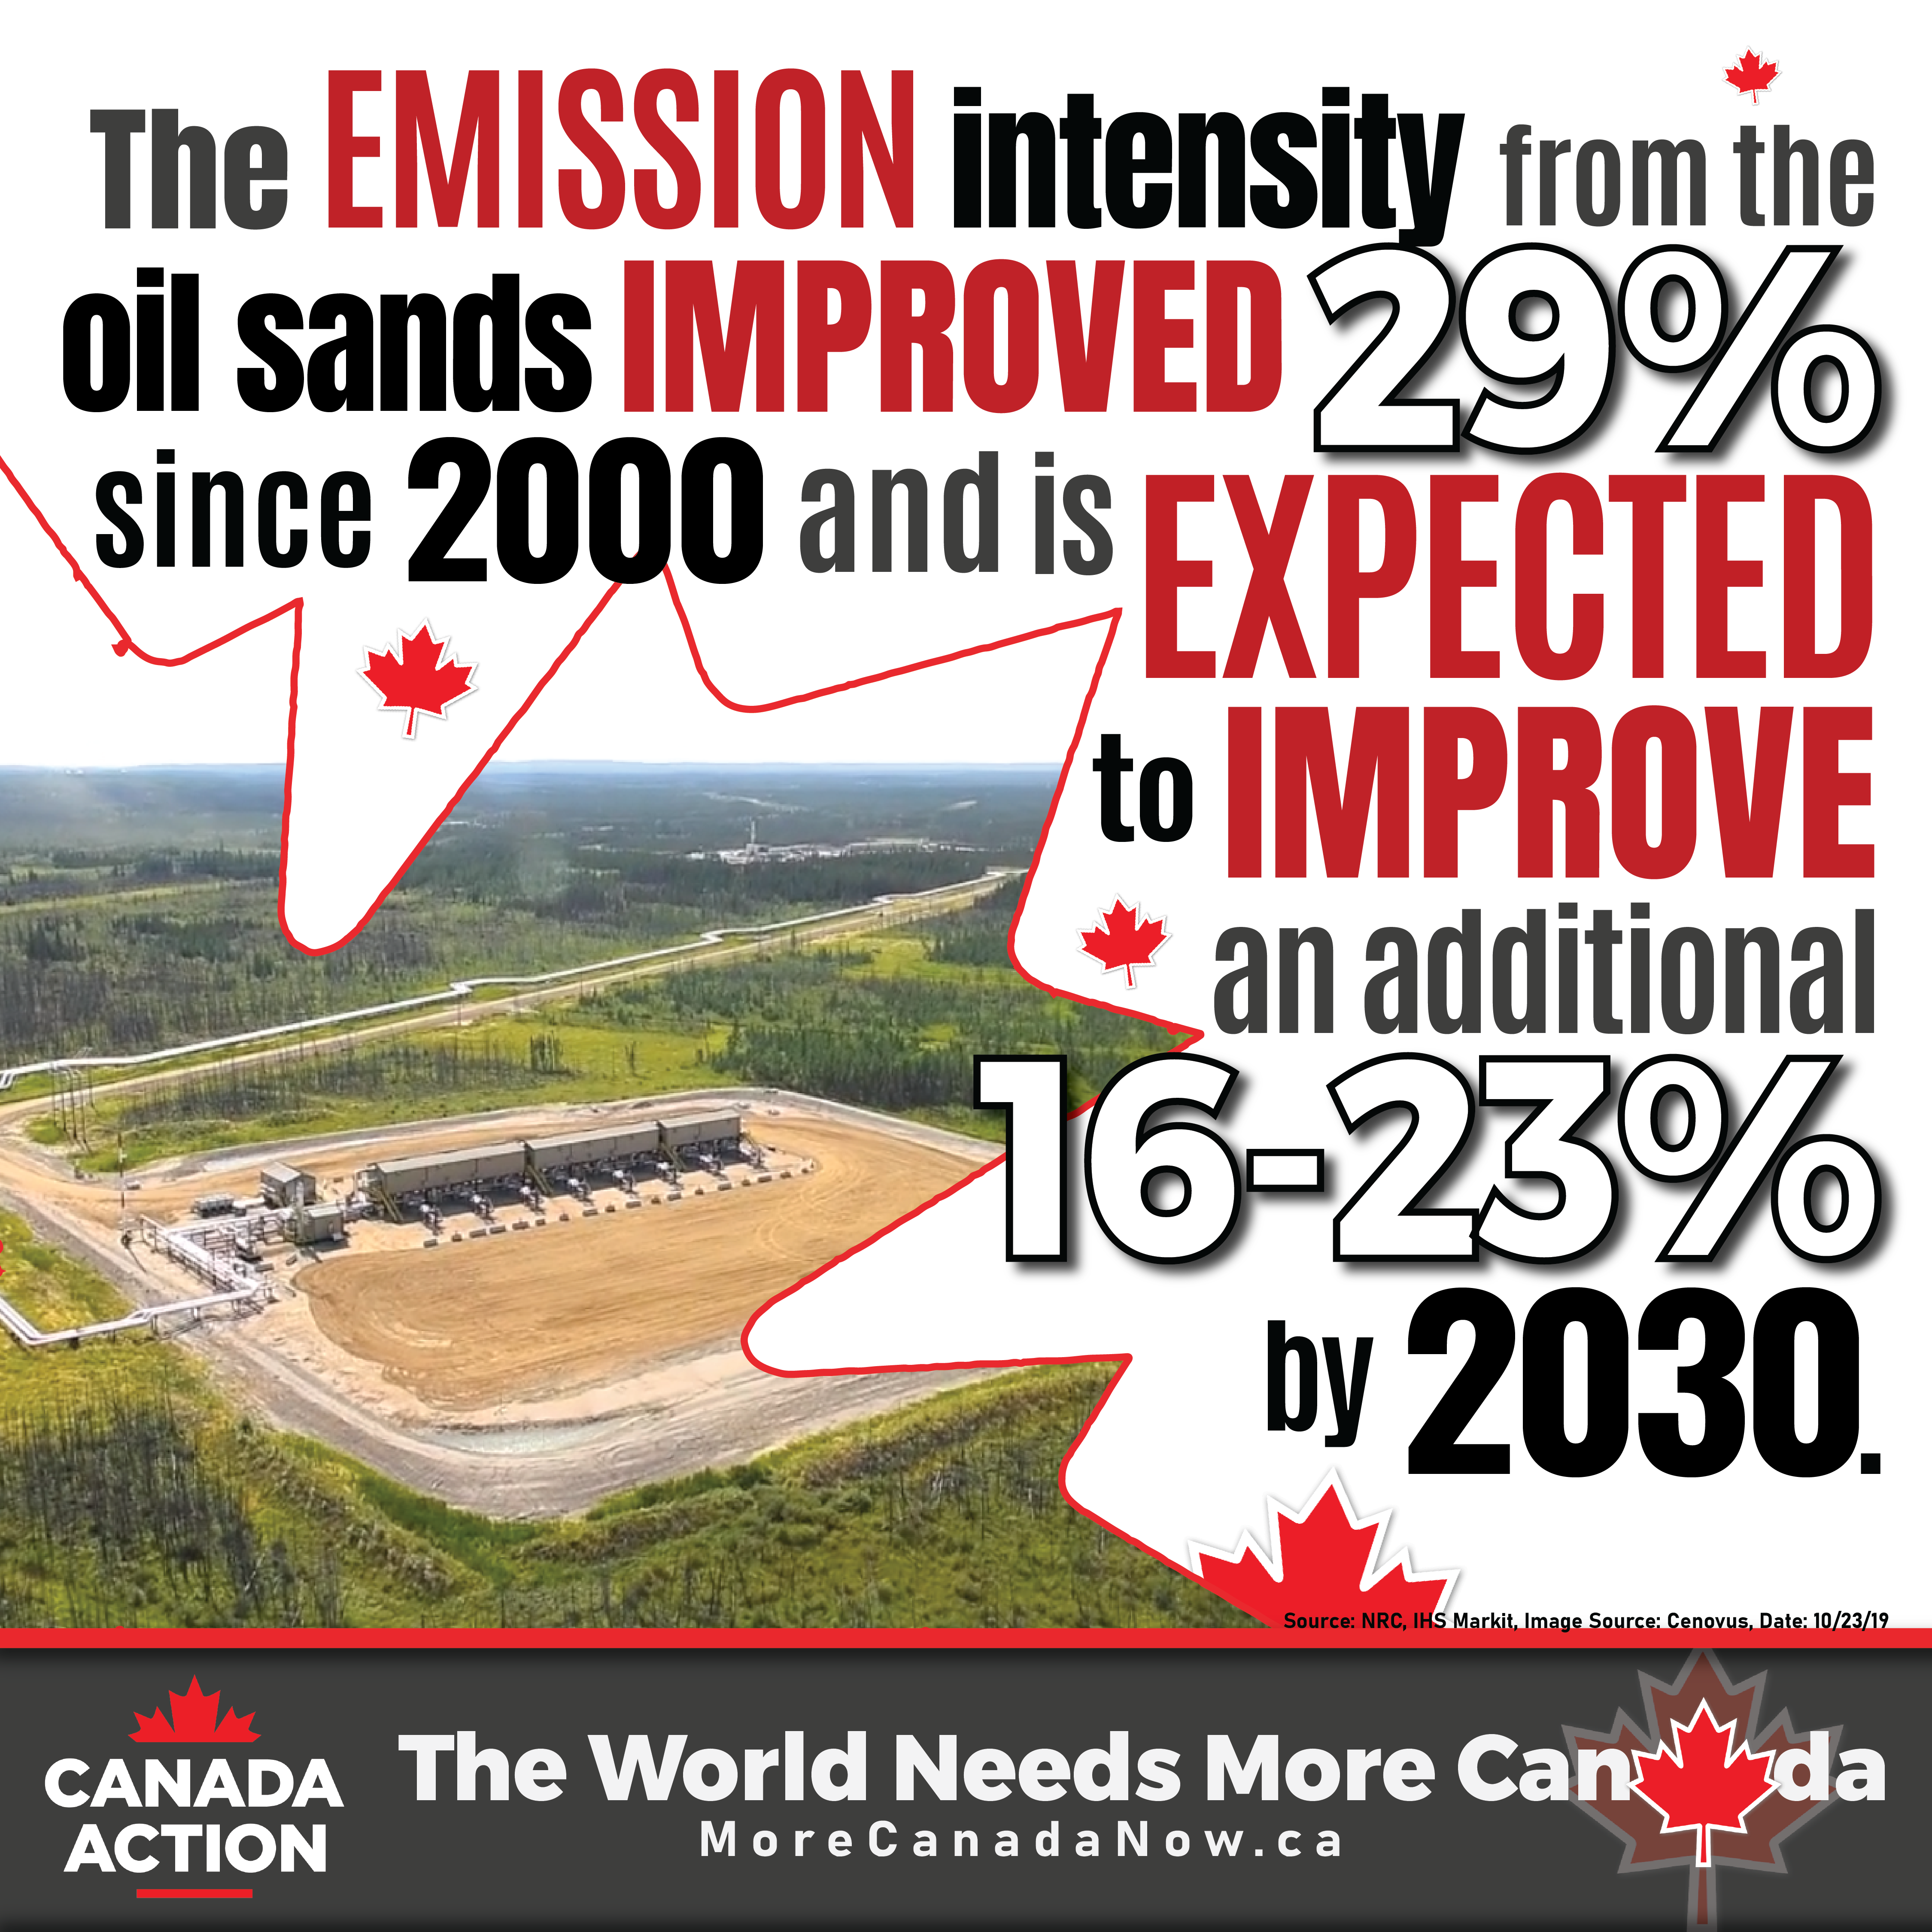 Canadian oil sands emission intensity reductions since 2000 and projections by 2030